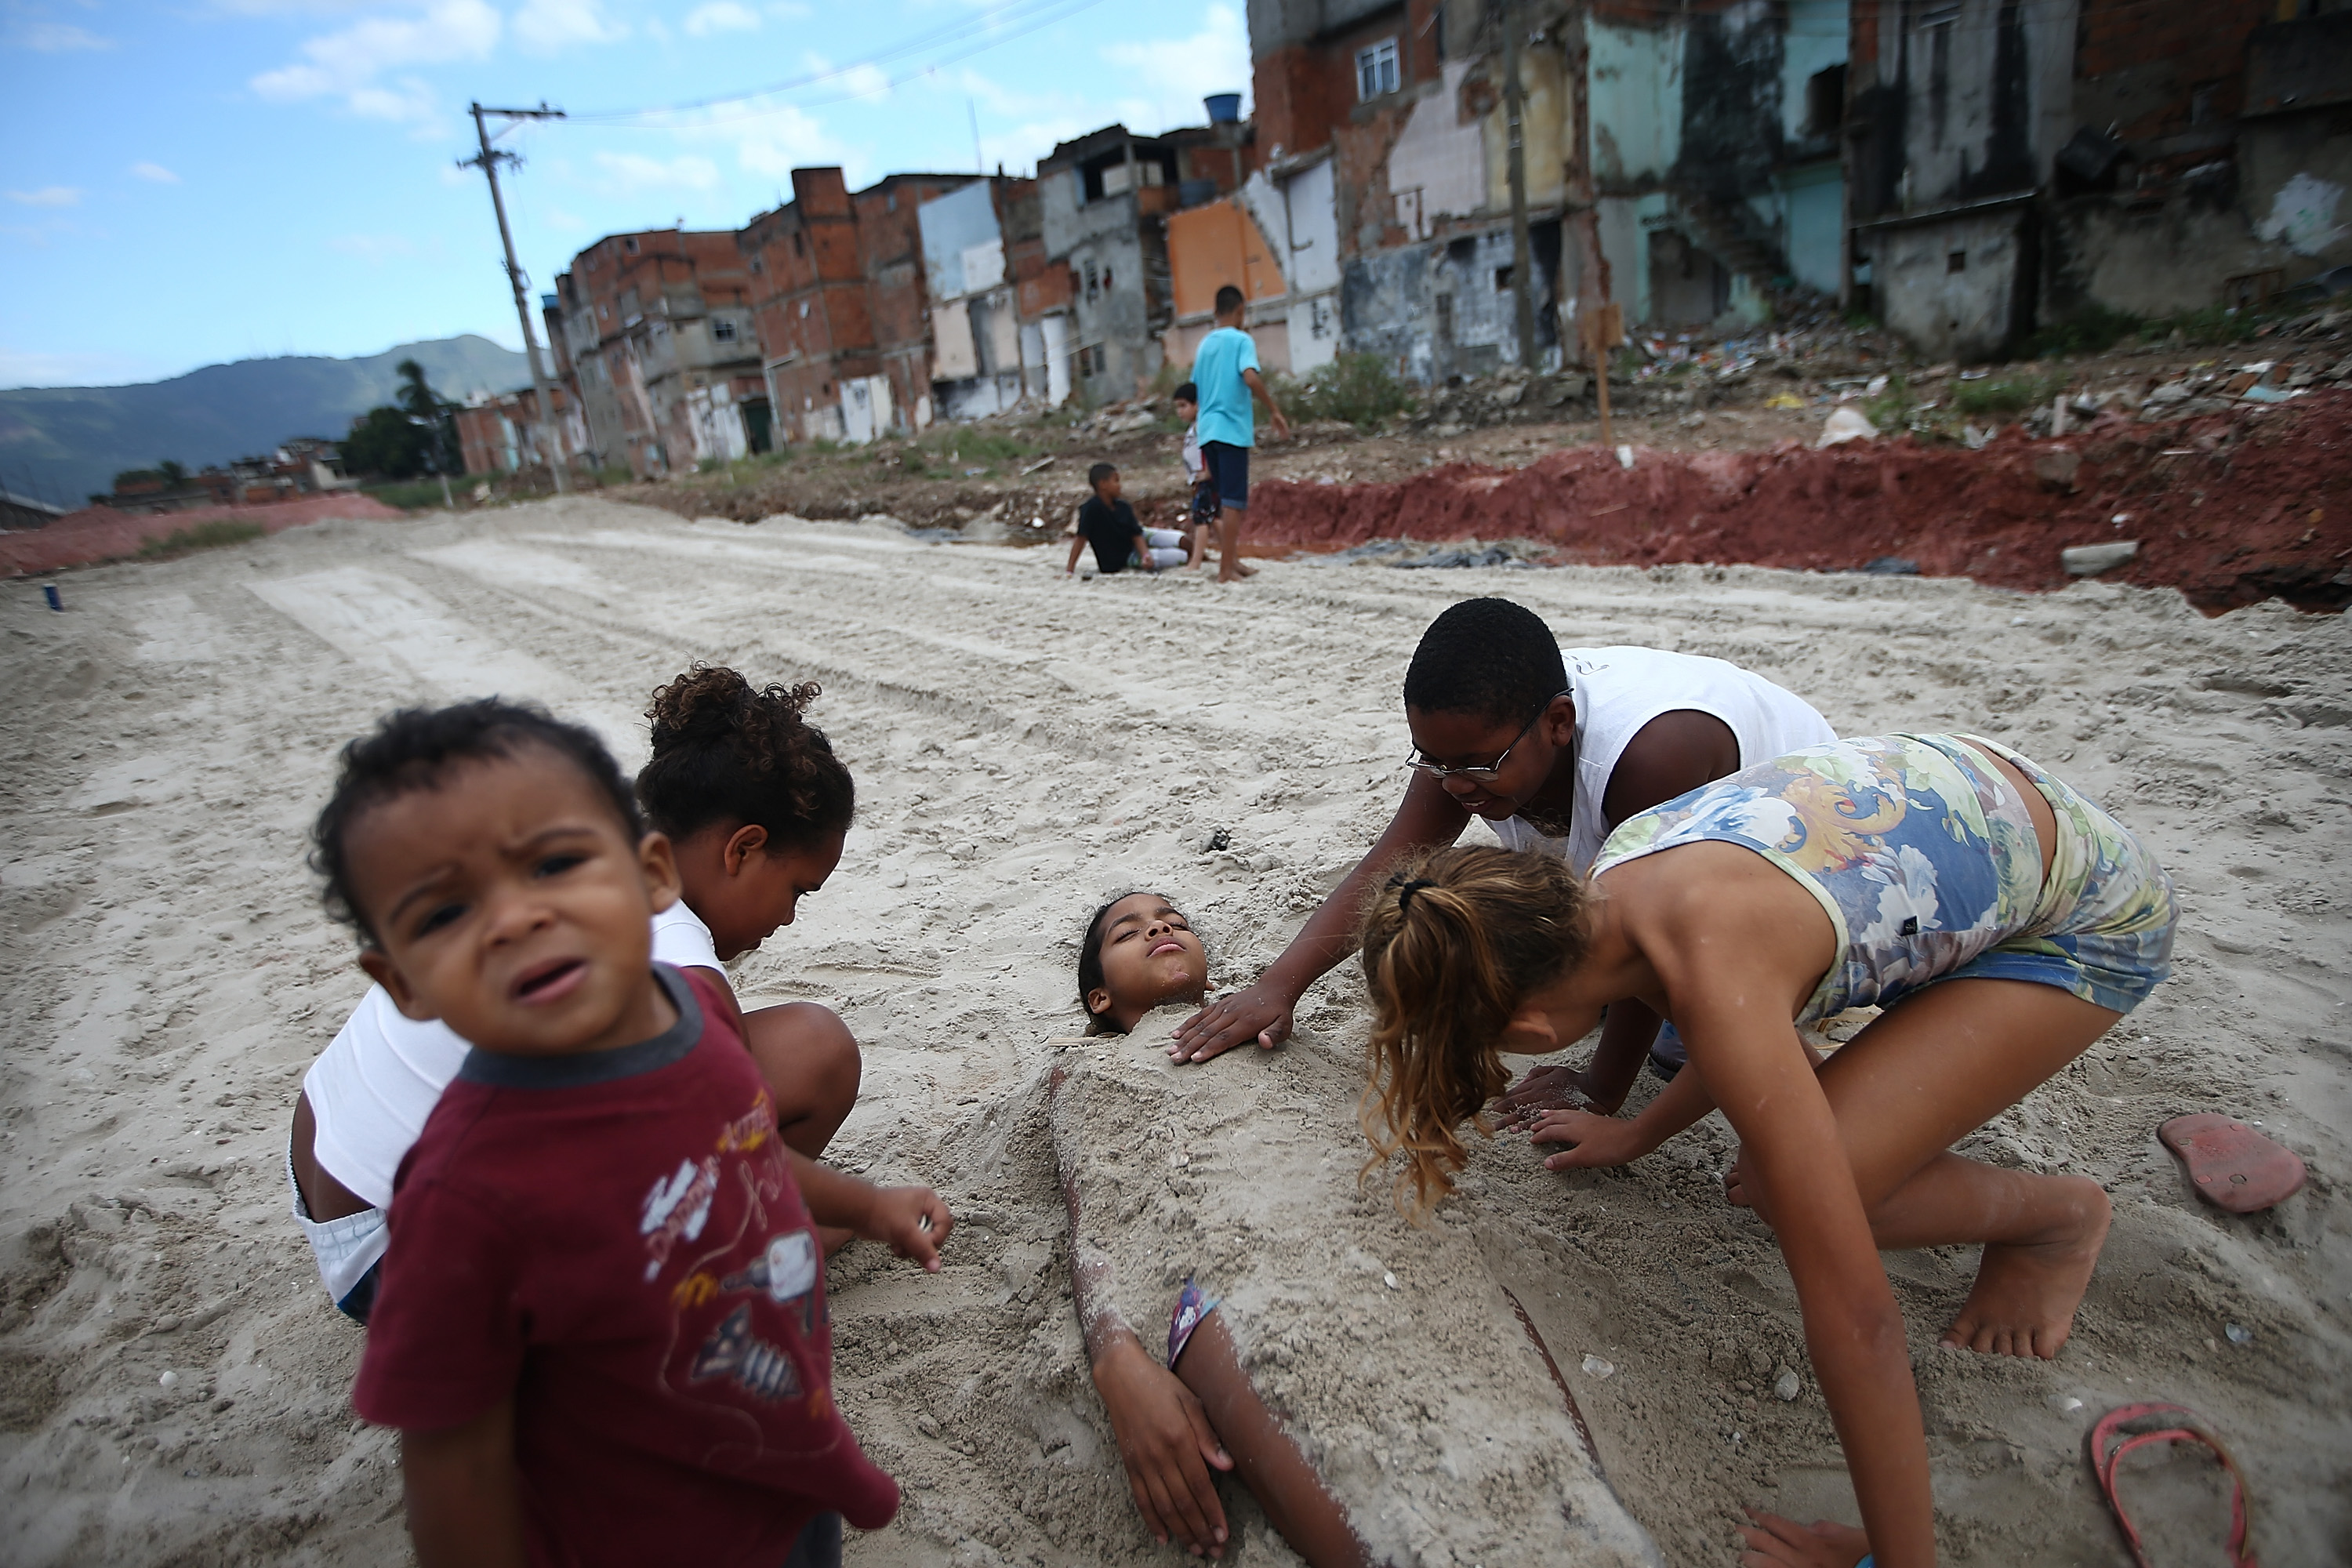 Kids play in dirt from construction in an area where homes were torn down in the Manguinhos community on May 27, 2014 in Rio de Janeiro.